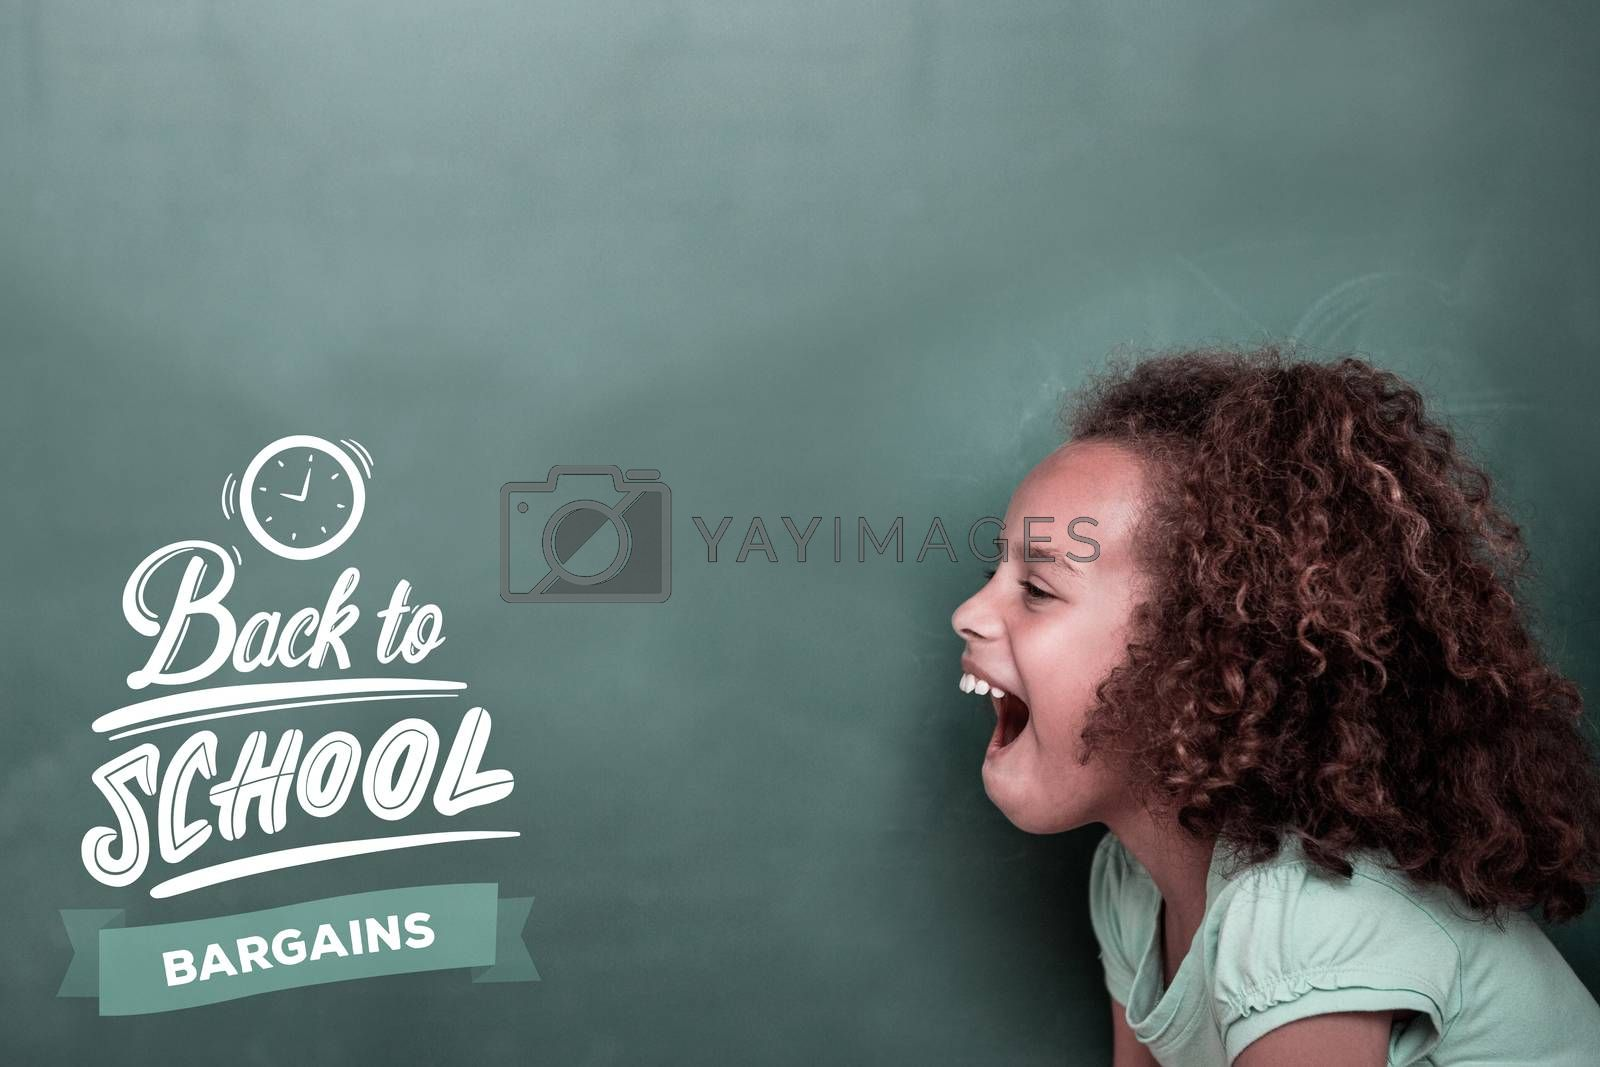 back to school against cute pupil shouting